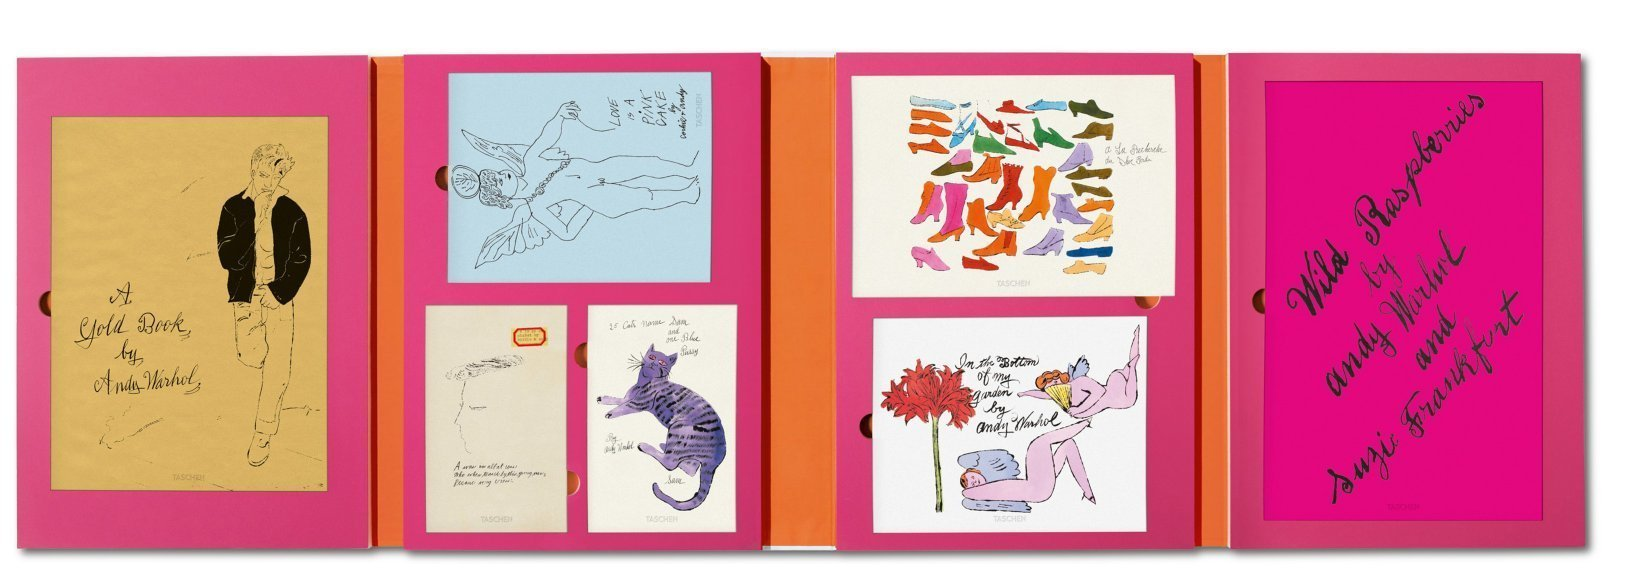 Andy Warhol. Seven Illustrated Books. 1952-1959: Amazon.es: Vv. Aa ...